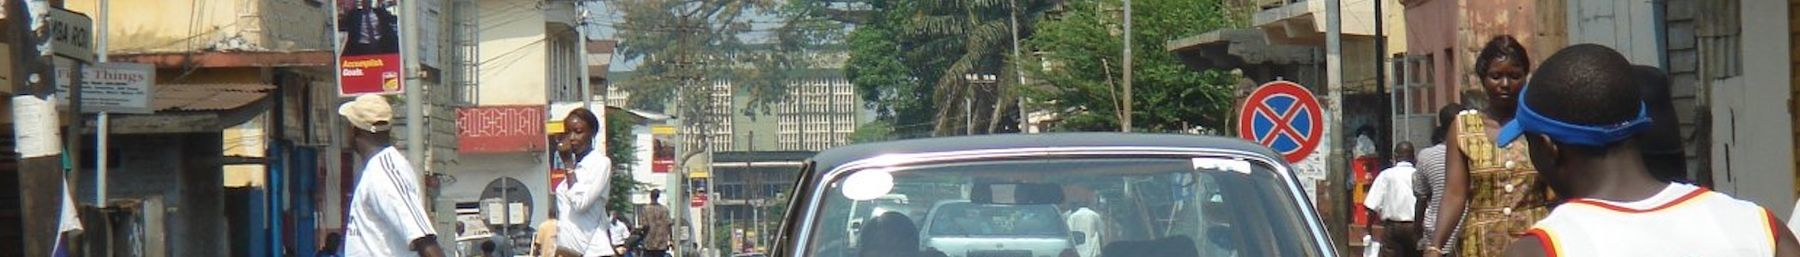 WV banner Freetown Street view.jpg